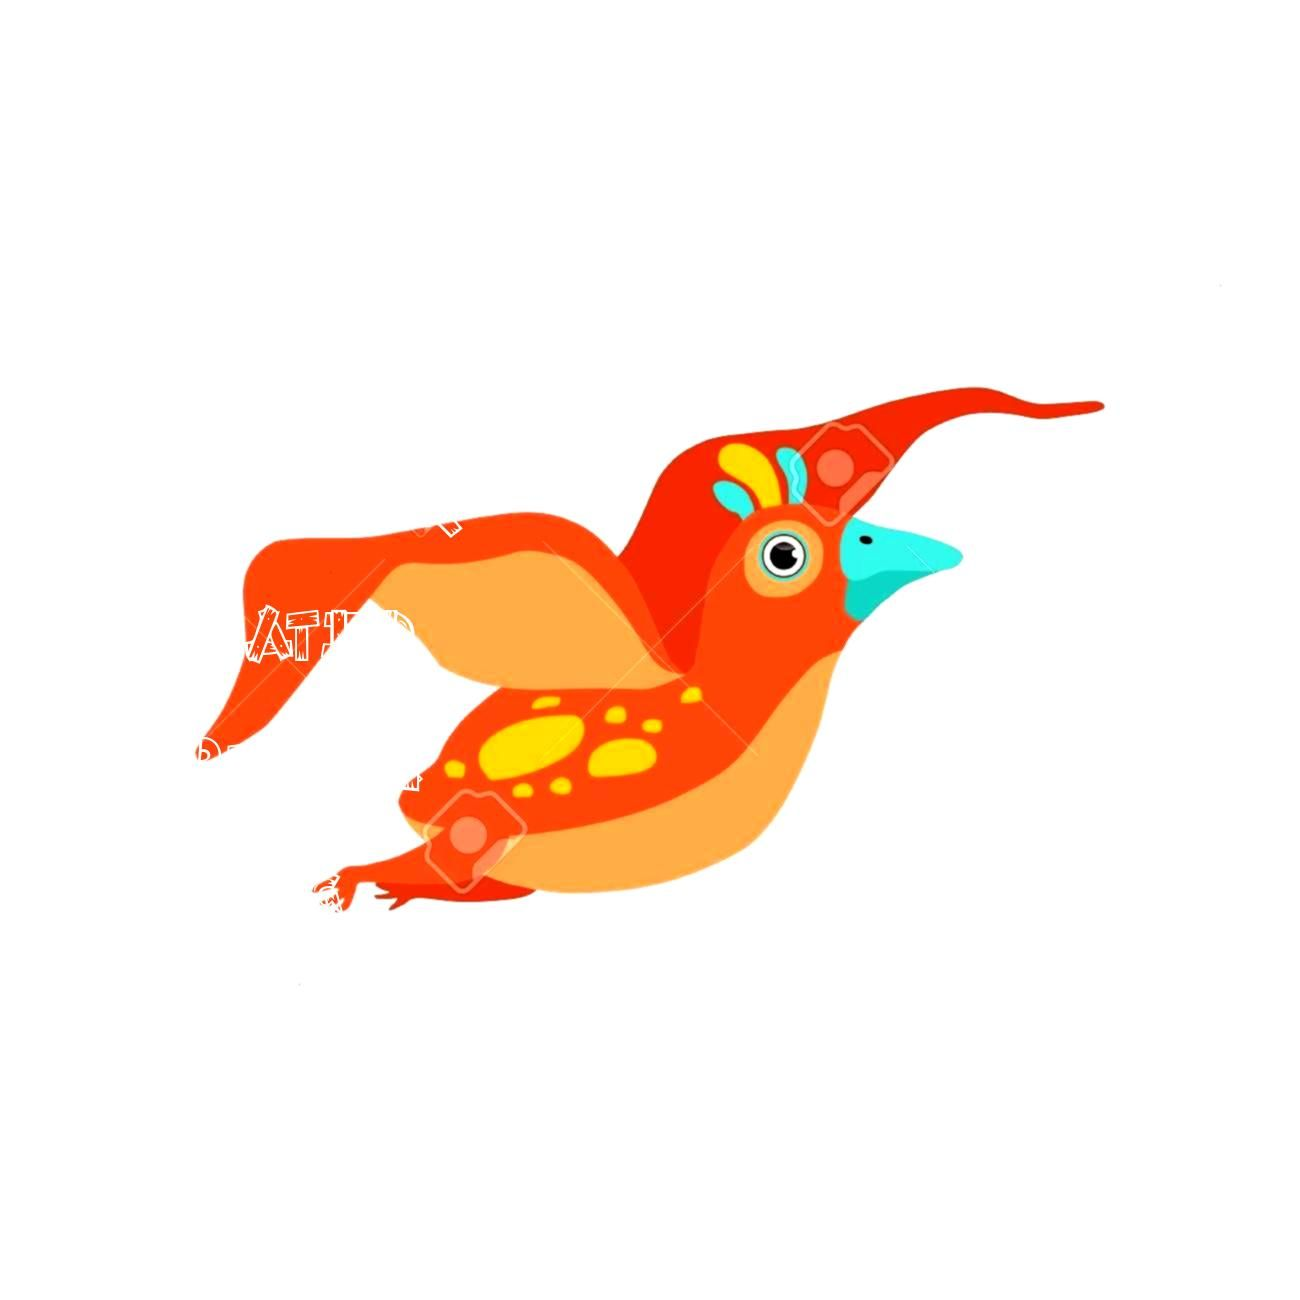 flying dinosaur funny baby dino cartoon character vector Illustration isolated on a white background Illustration Cute flying dinosaur funny baby dino cartoon character v...